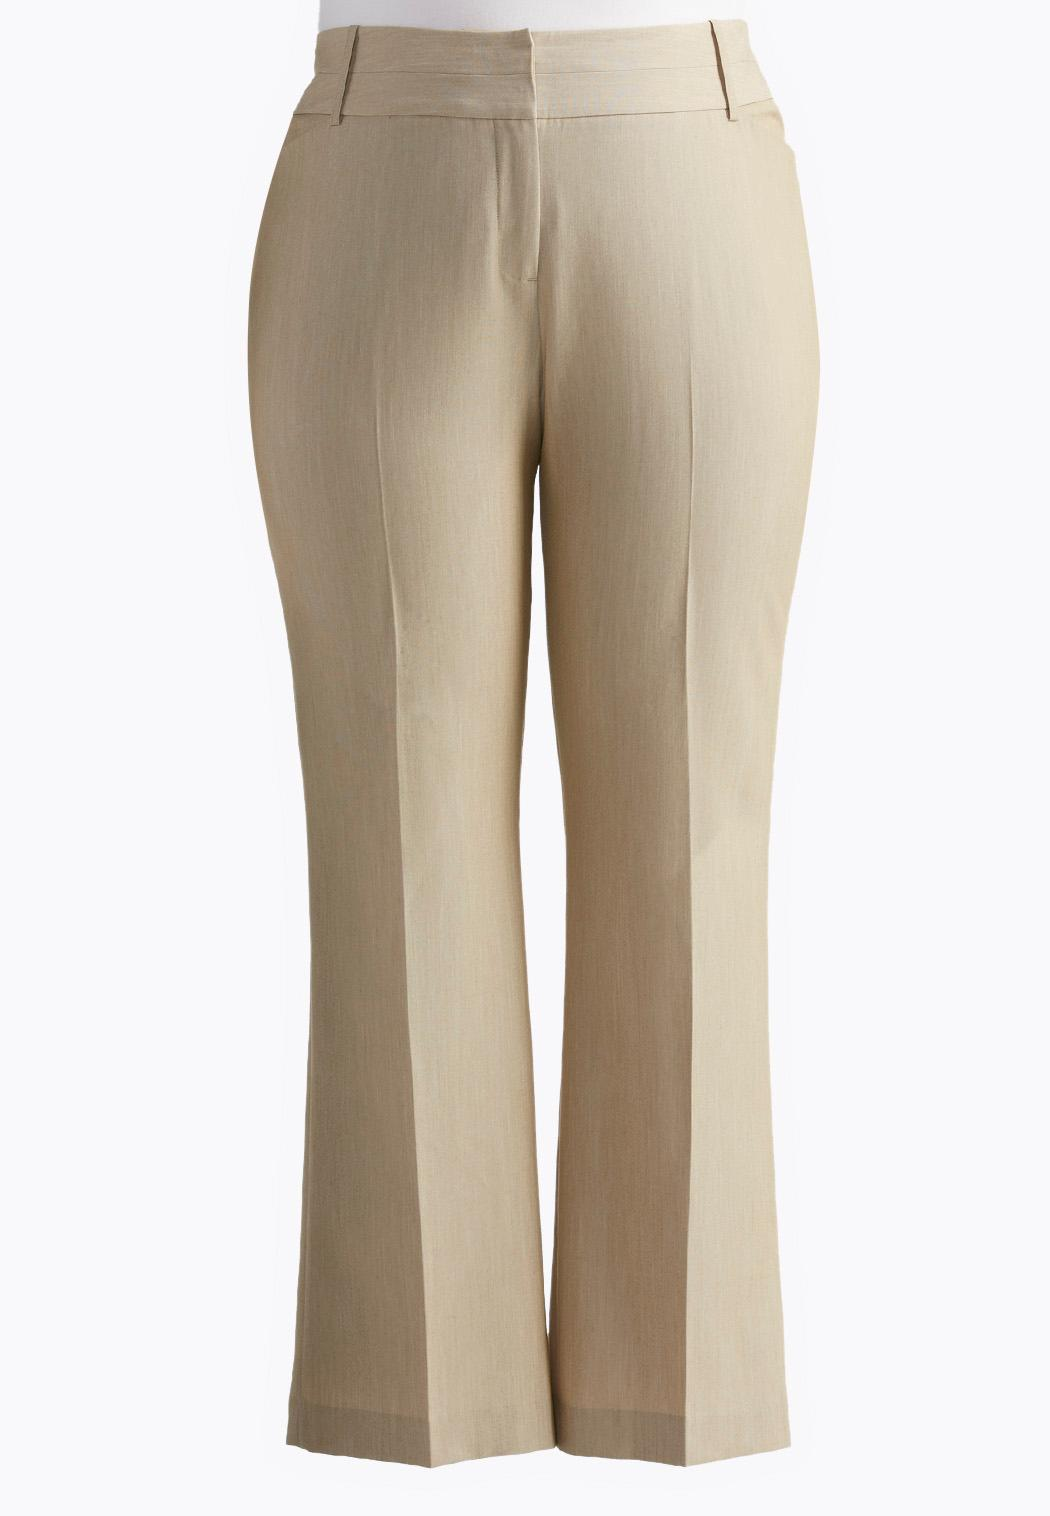 8e3c5206e19 Plus Extended Shape Enhancing Essential Trousers Wide Leg Cato Fashions